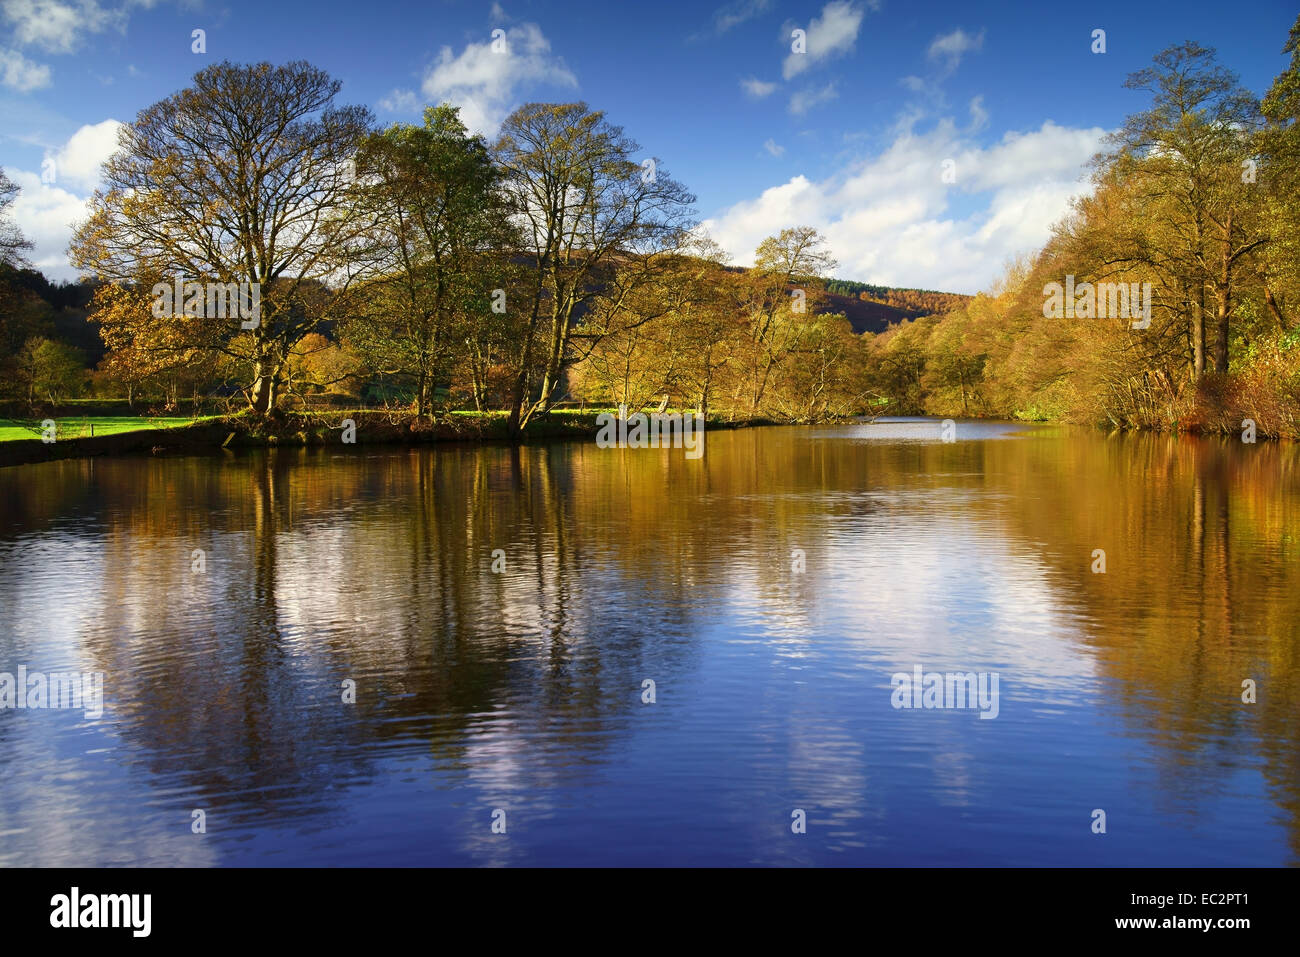 UK,Derbyshire,Peak District,Bamford,Fiume Derwent riflessioni Immagini Stock